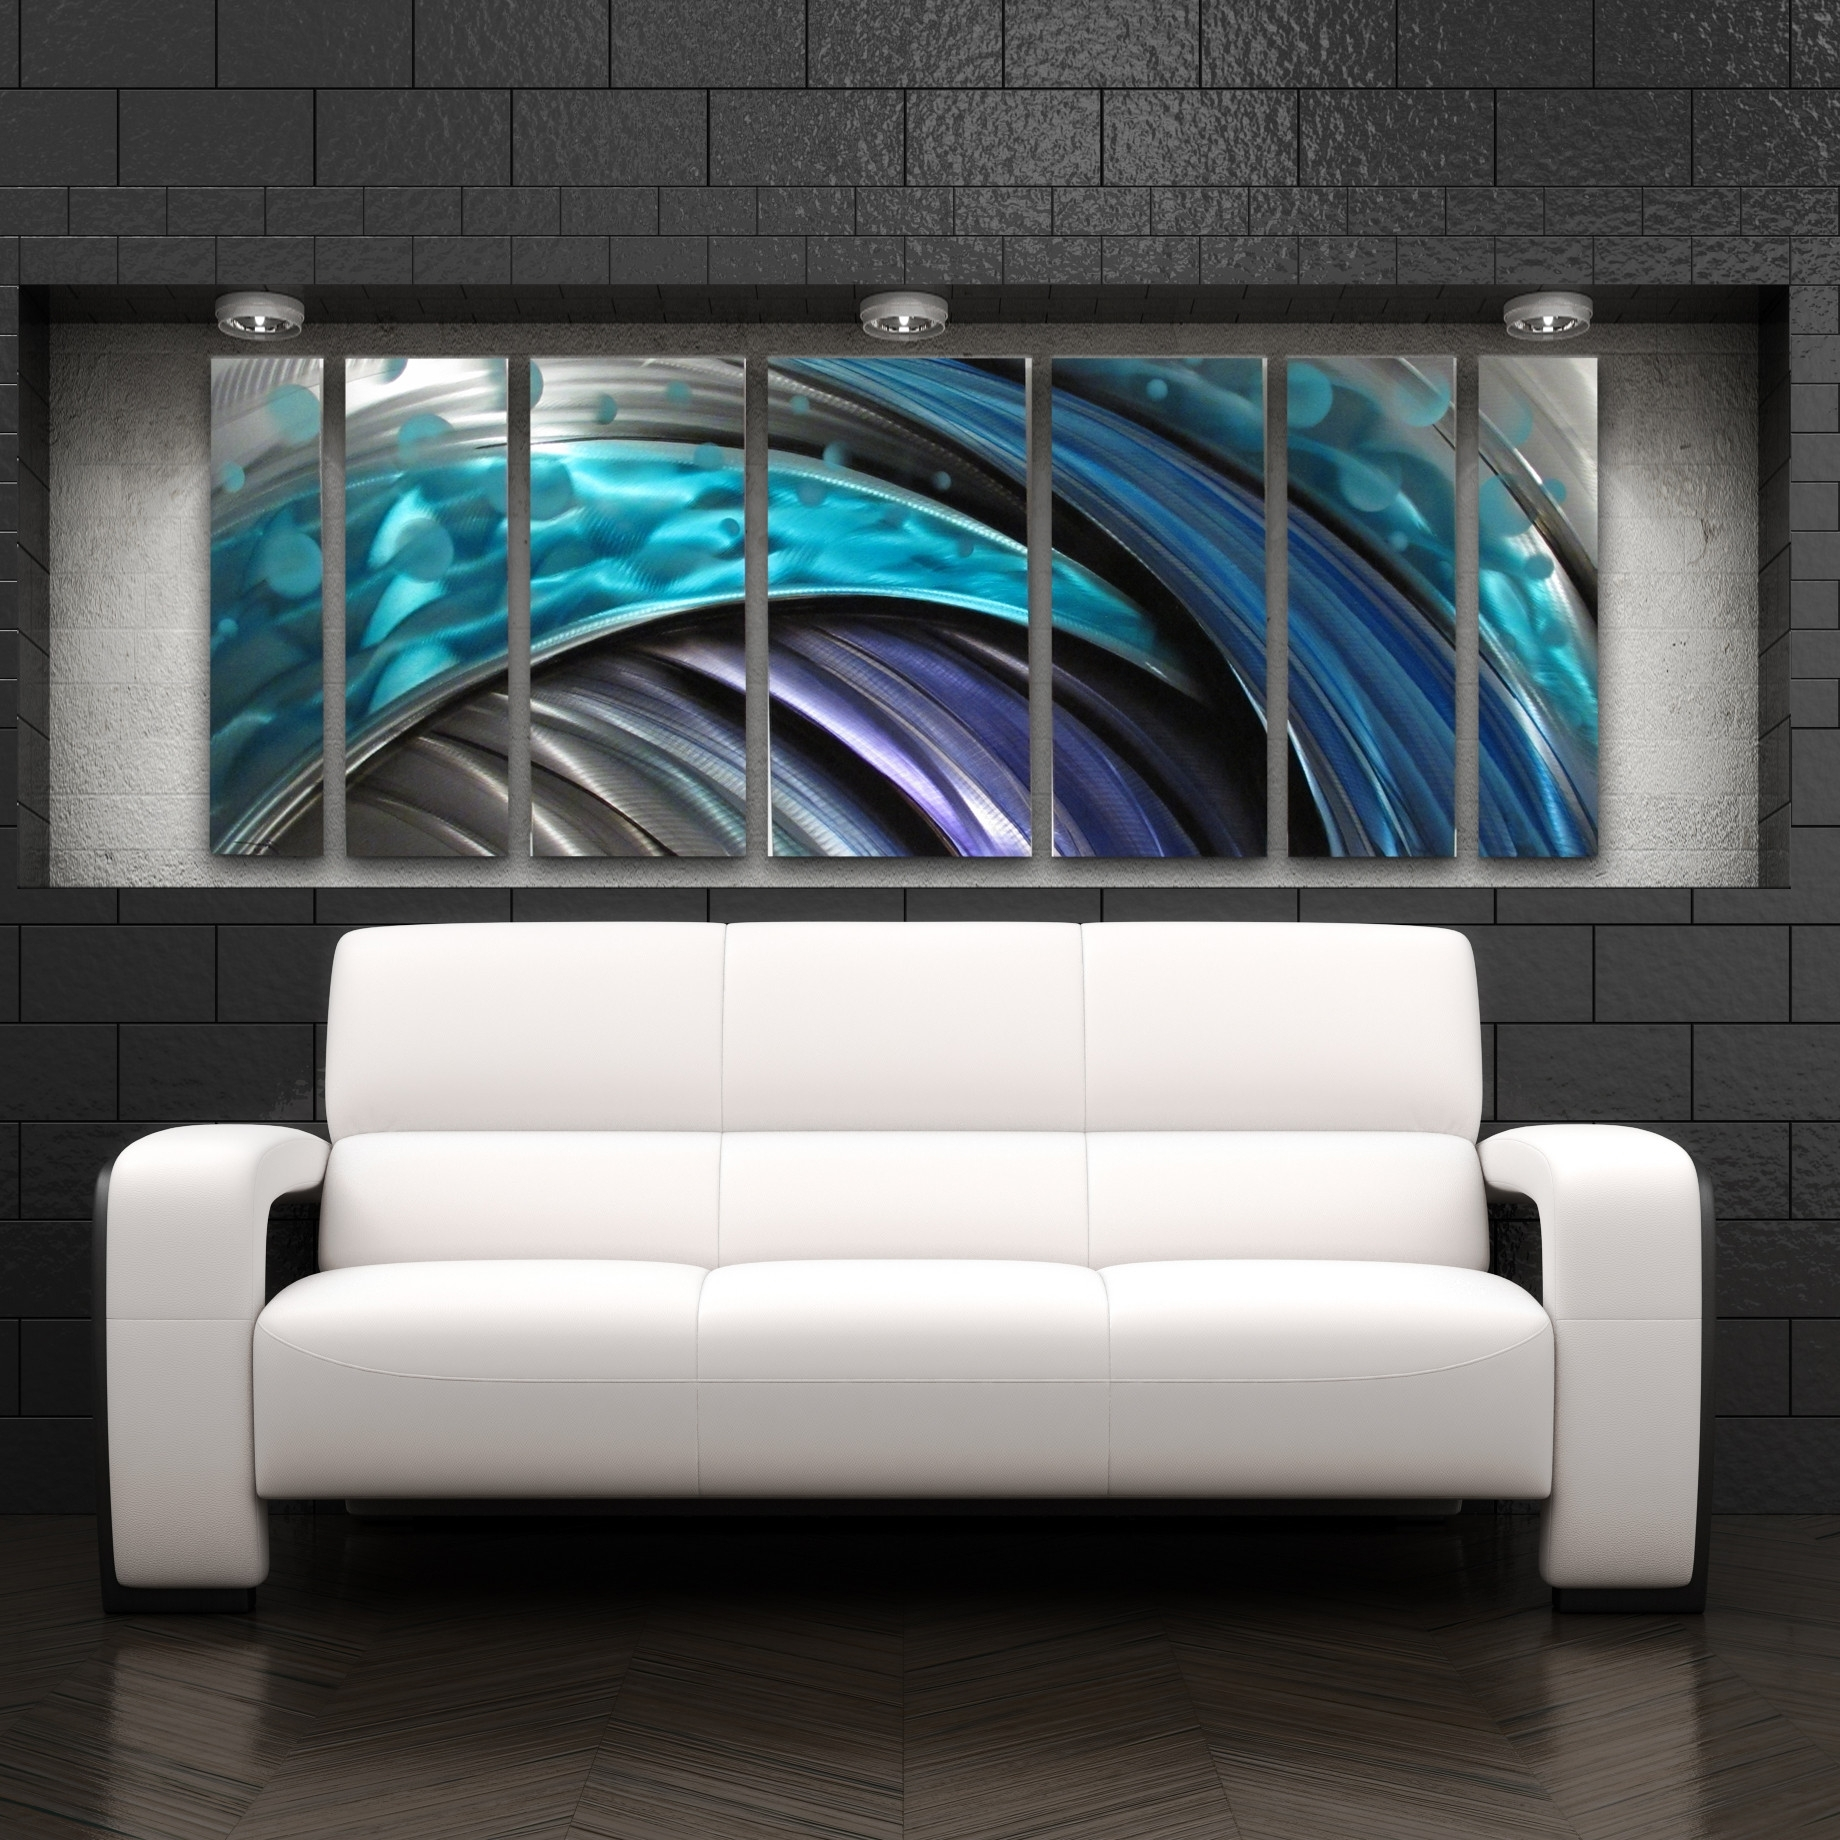 Fashionable Contemporary Metal Wall Art Sculpture Intended For Facts That Nobody Told You About Contemporary Metal Wall Art (View 6 of 15)